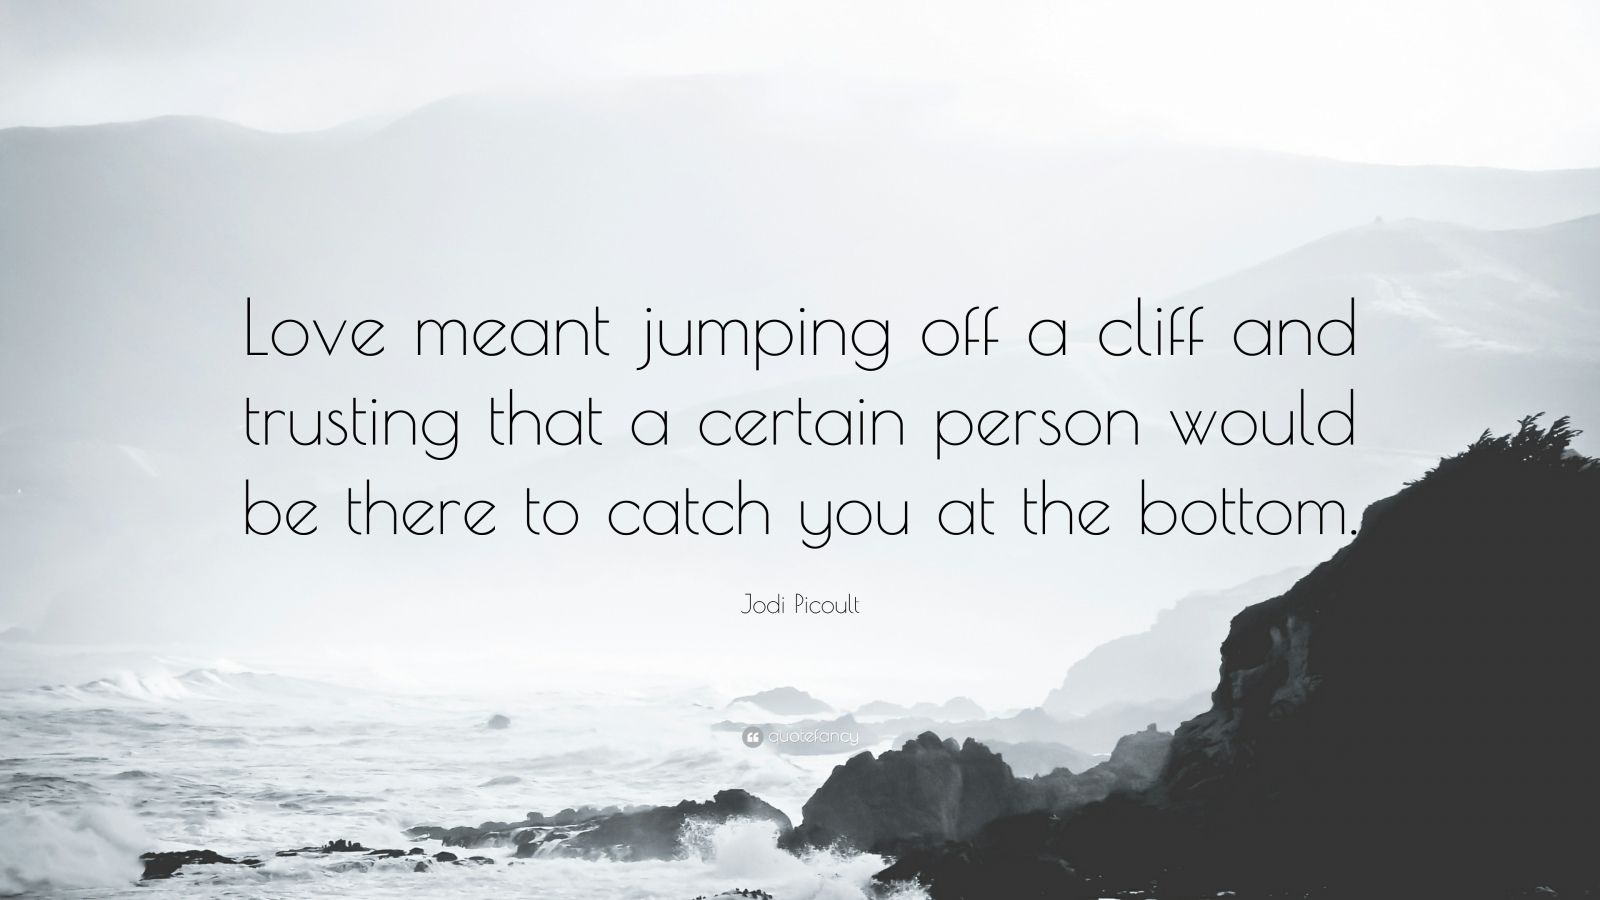 """Jodi Picoult Quote: """"Love meant jumping off a cliff and trusting that a certain person would be there to catch you at the bottom."""""""